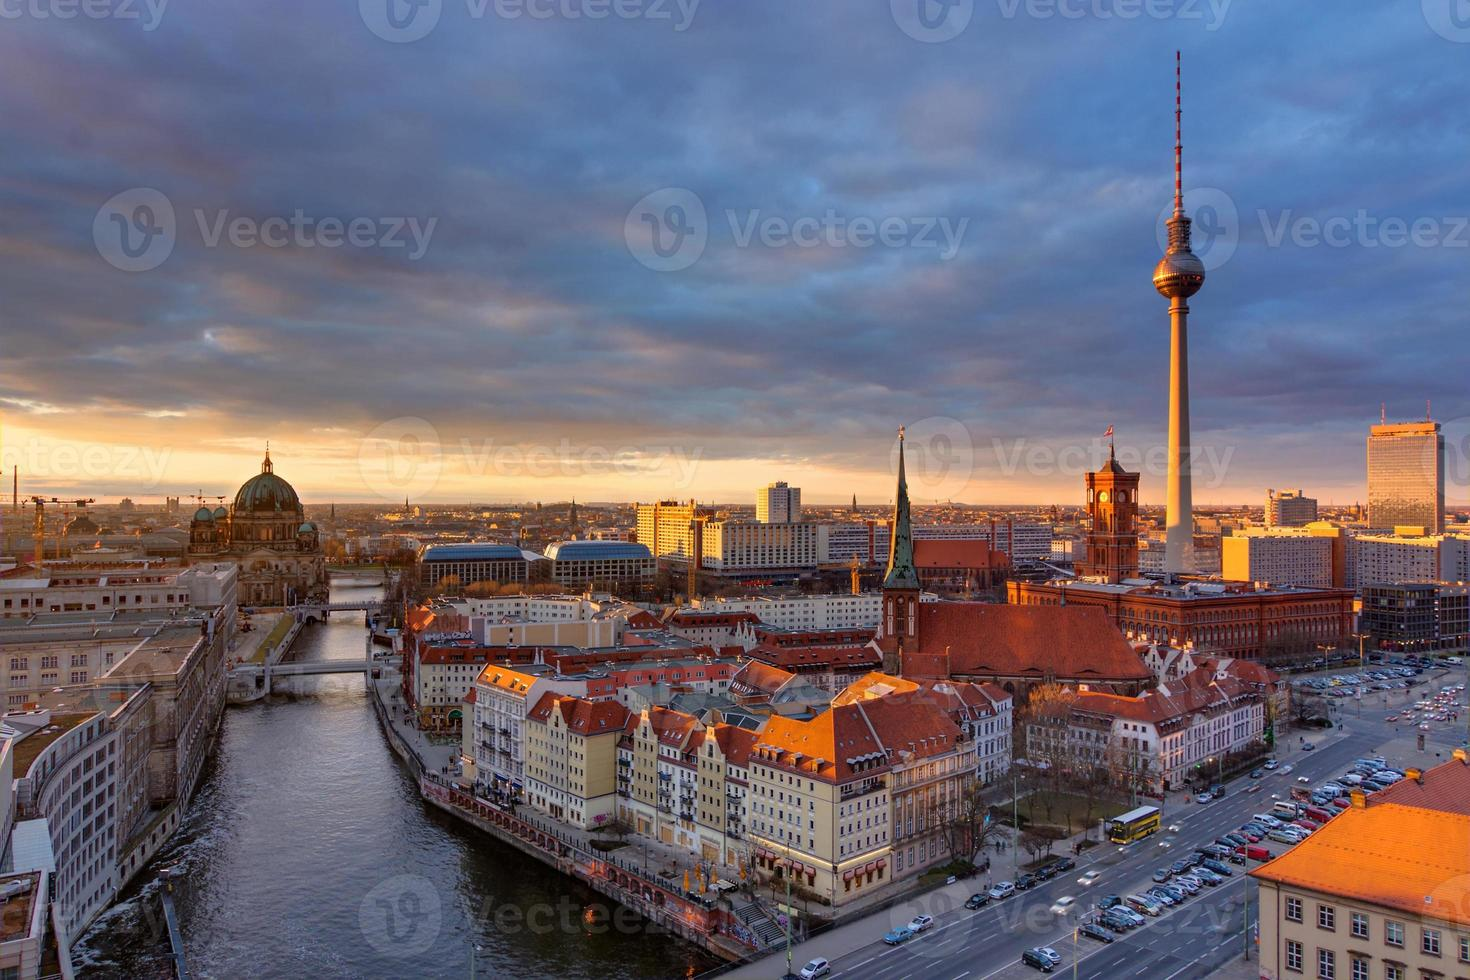 The center of Berlin at sunset photo